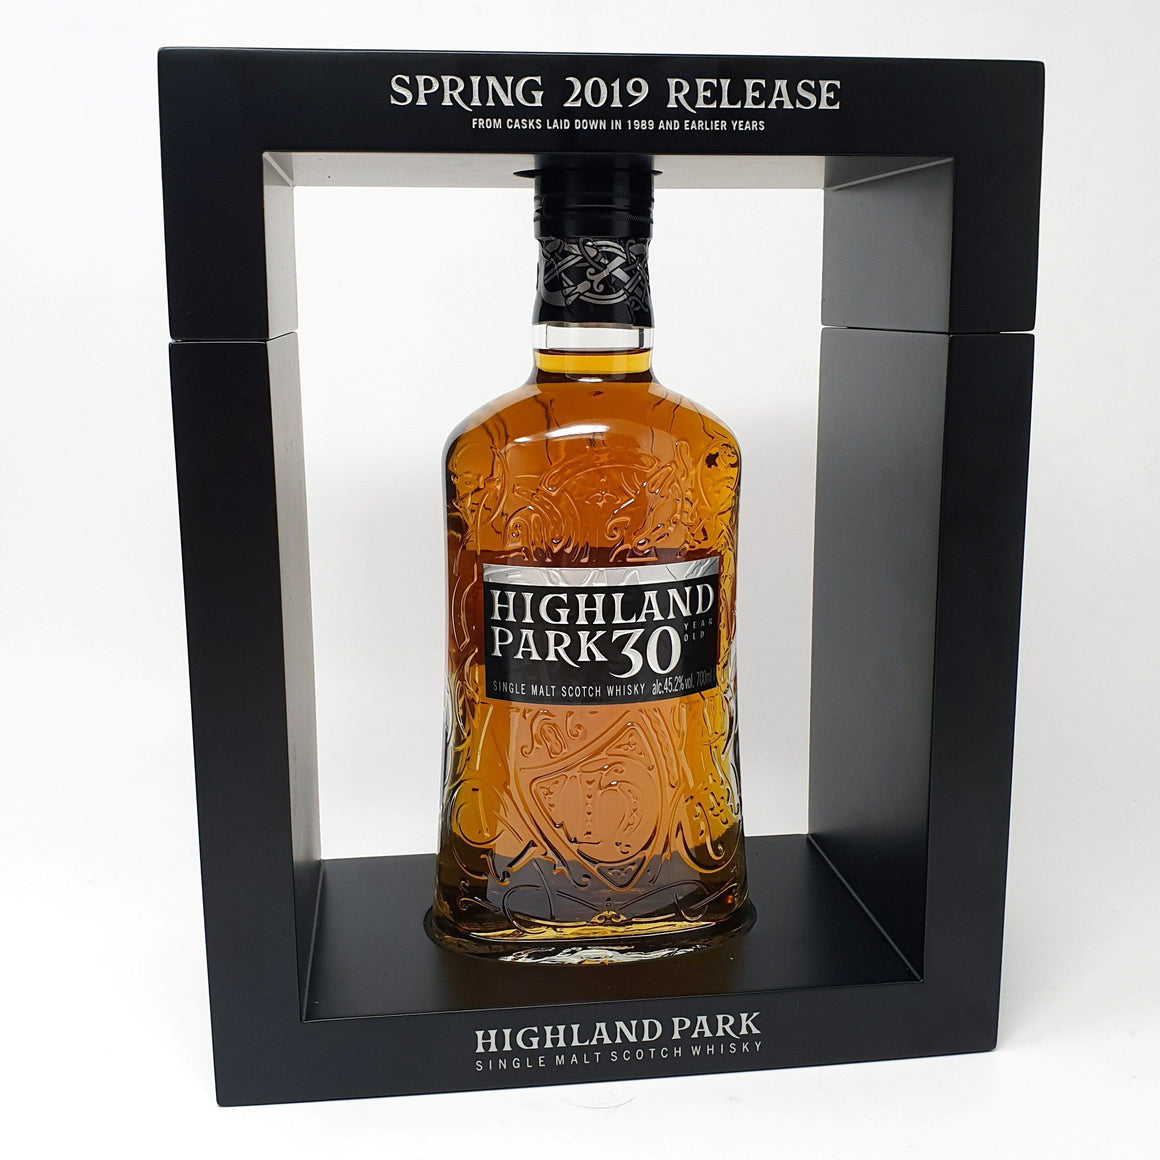 Highland Park 30 Year Old Spring 2019 Release Whisky Old and Rare Whisky